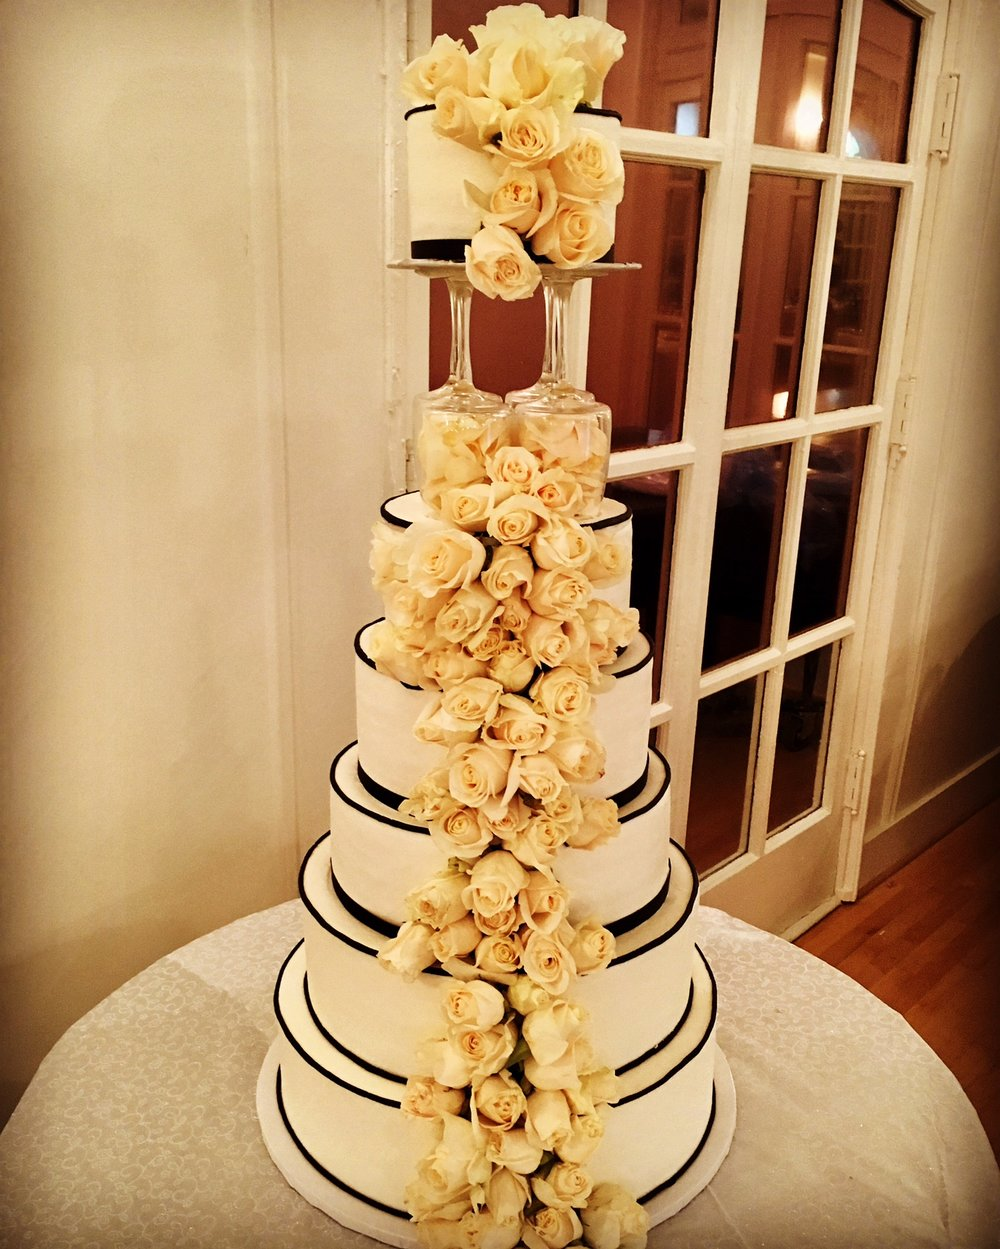 Roses and classic tower cake.jpg